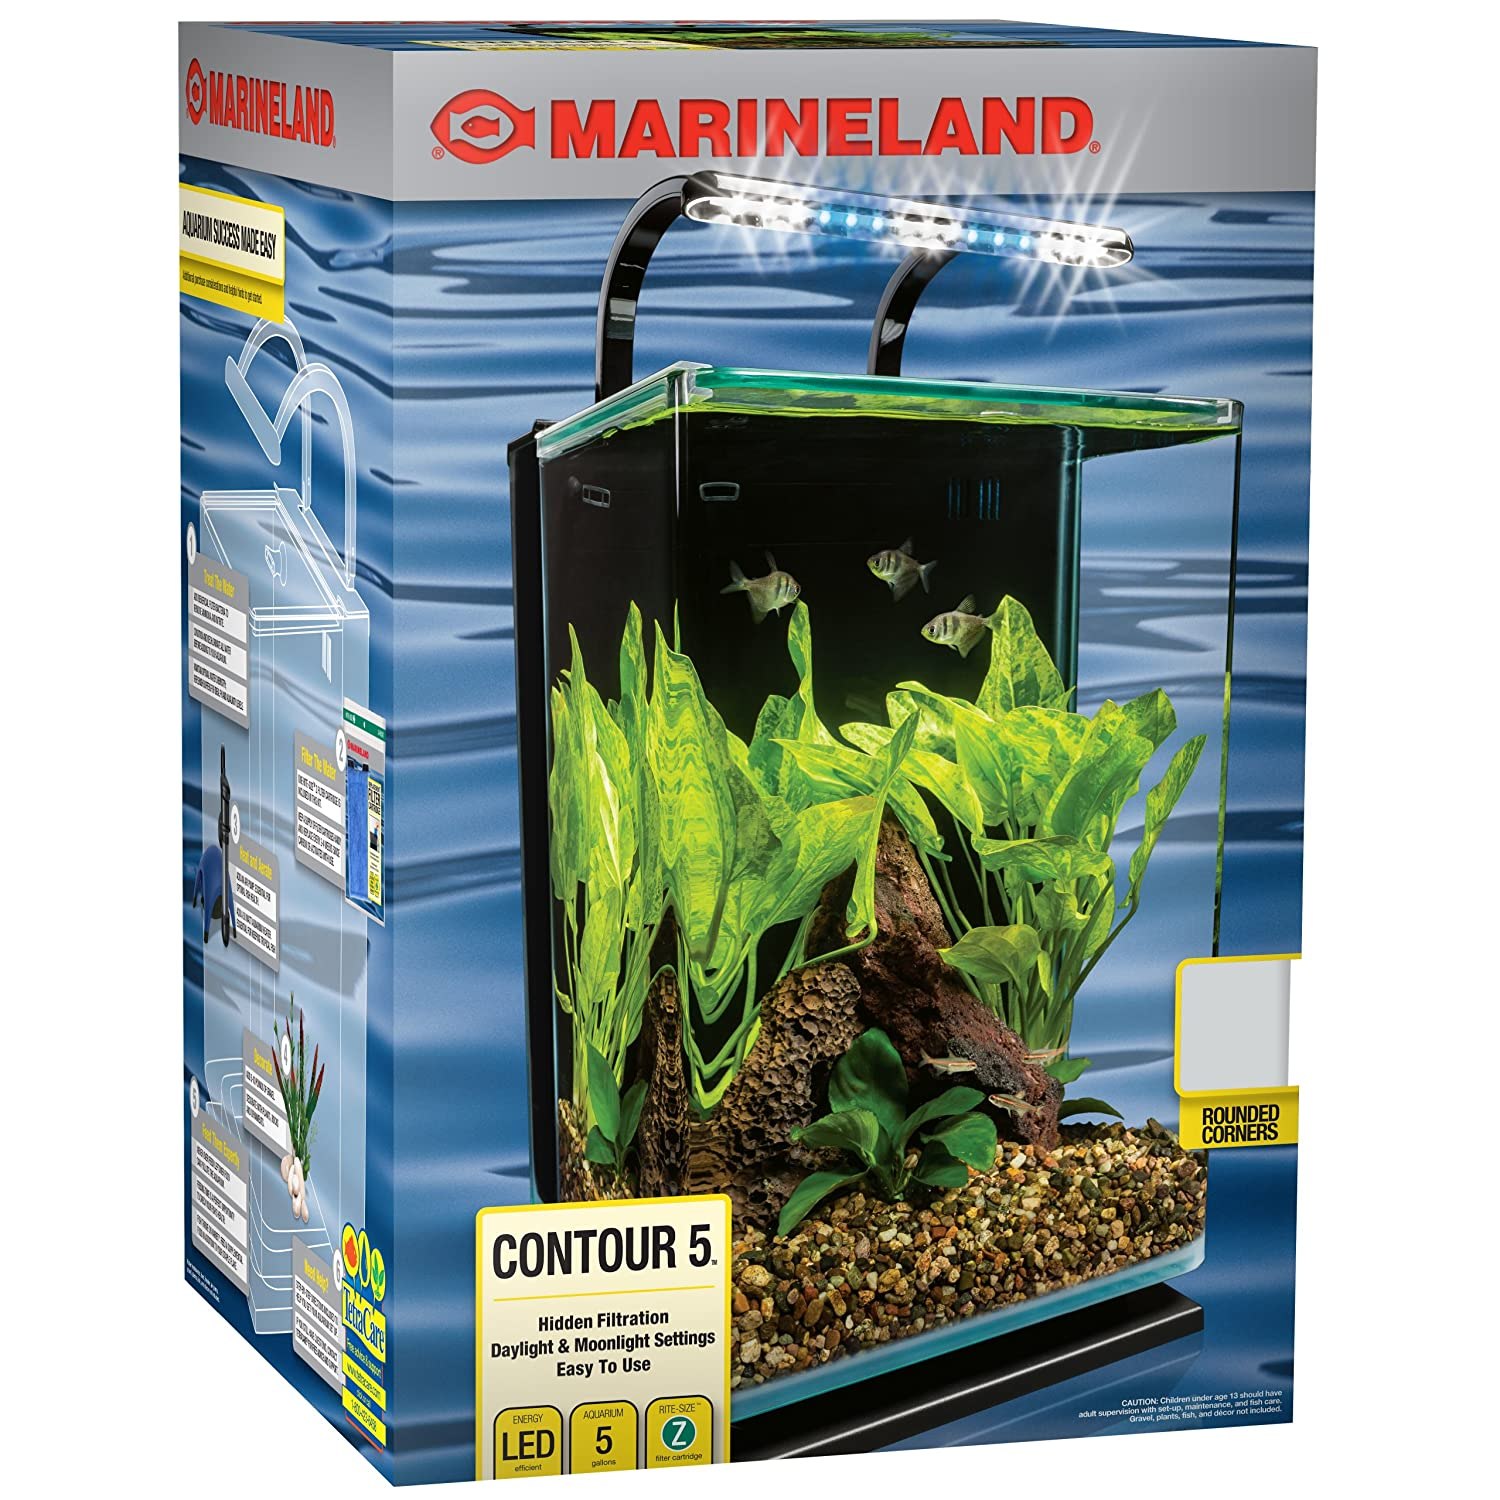 Fish aquarium just dial - Marineland Contour Glass Aquarium Kit With Rail Light 5 Gallon By Marineland Amazon Co Uk Pet Supplies